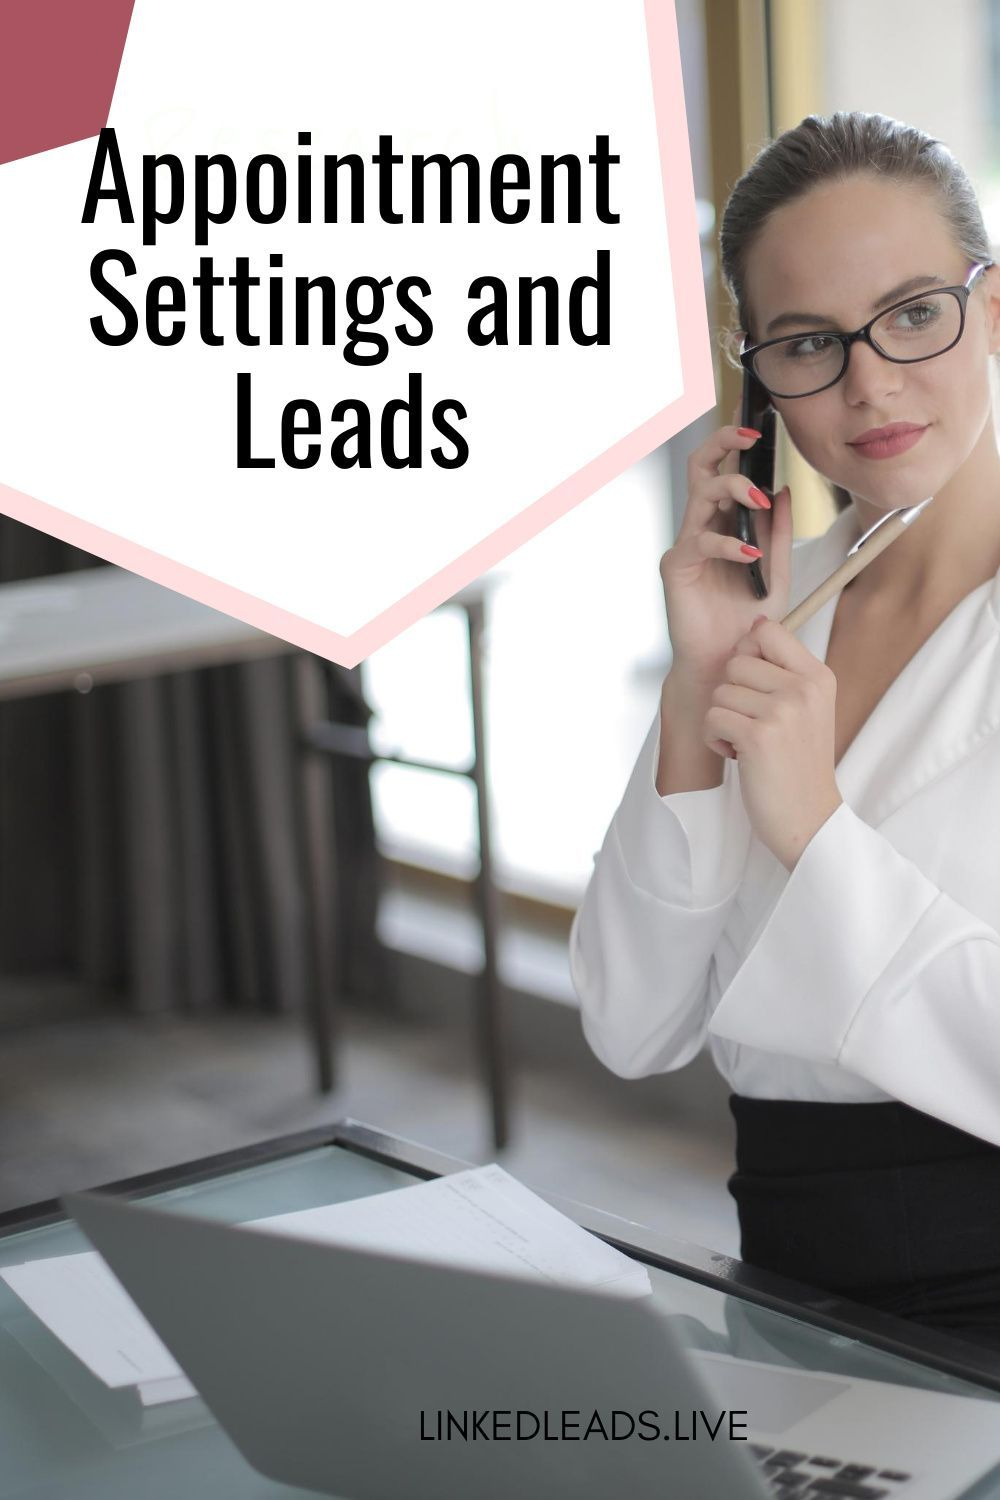 Appointment settings and leads linked leads in 2020